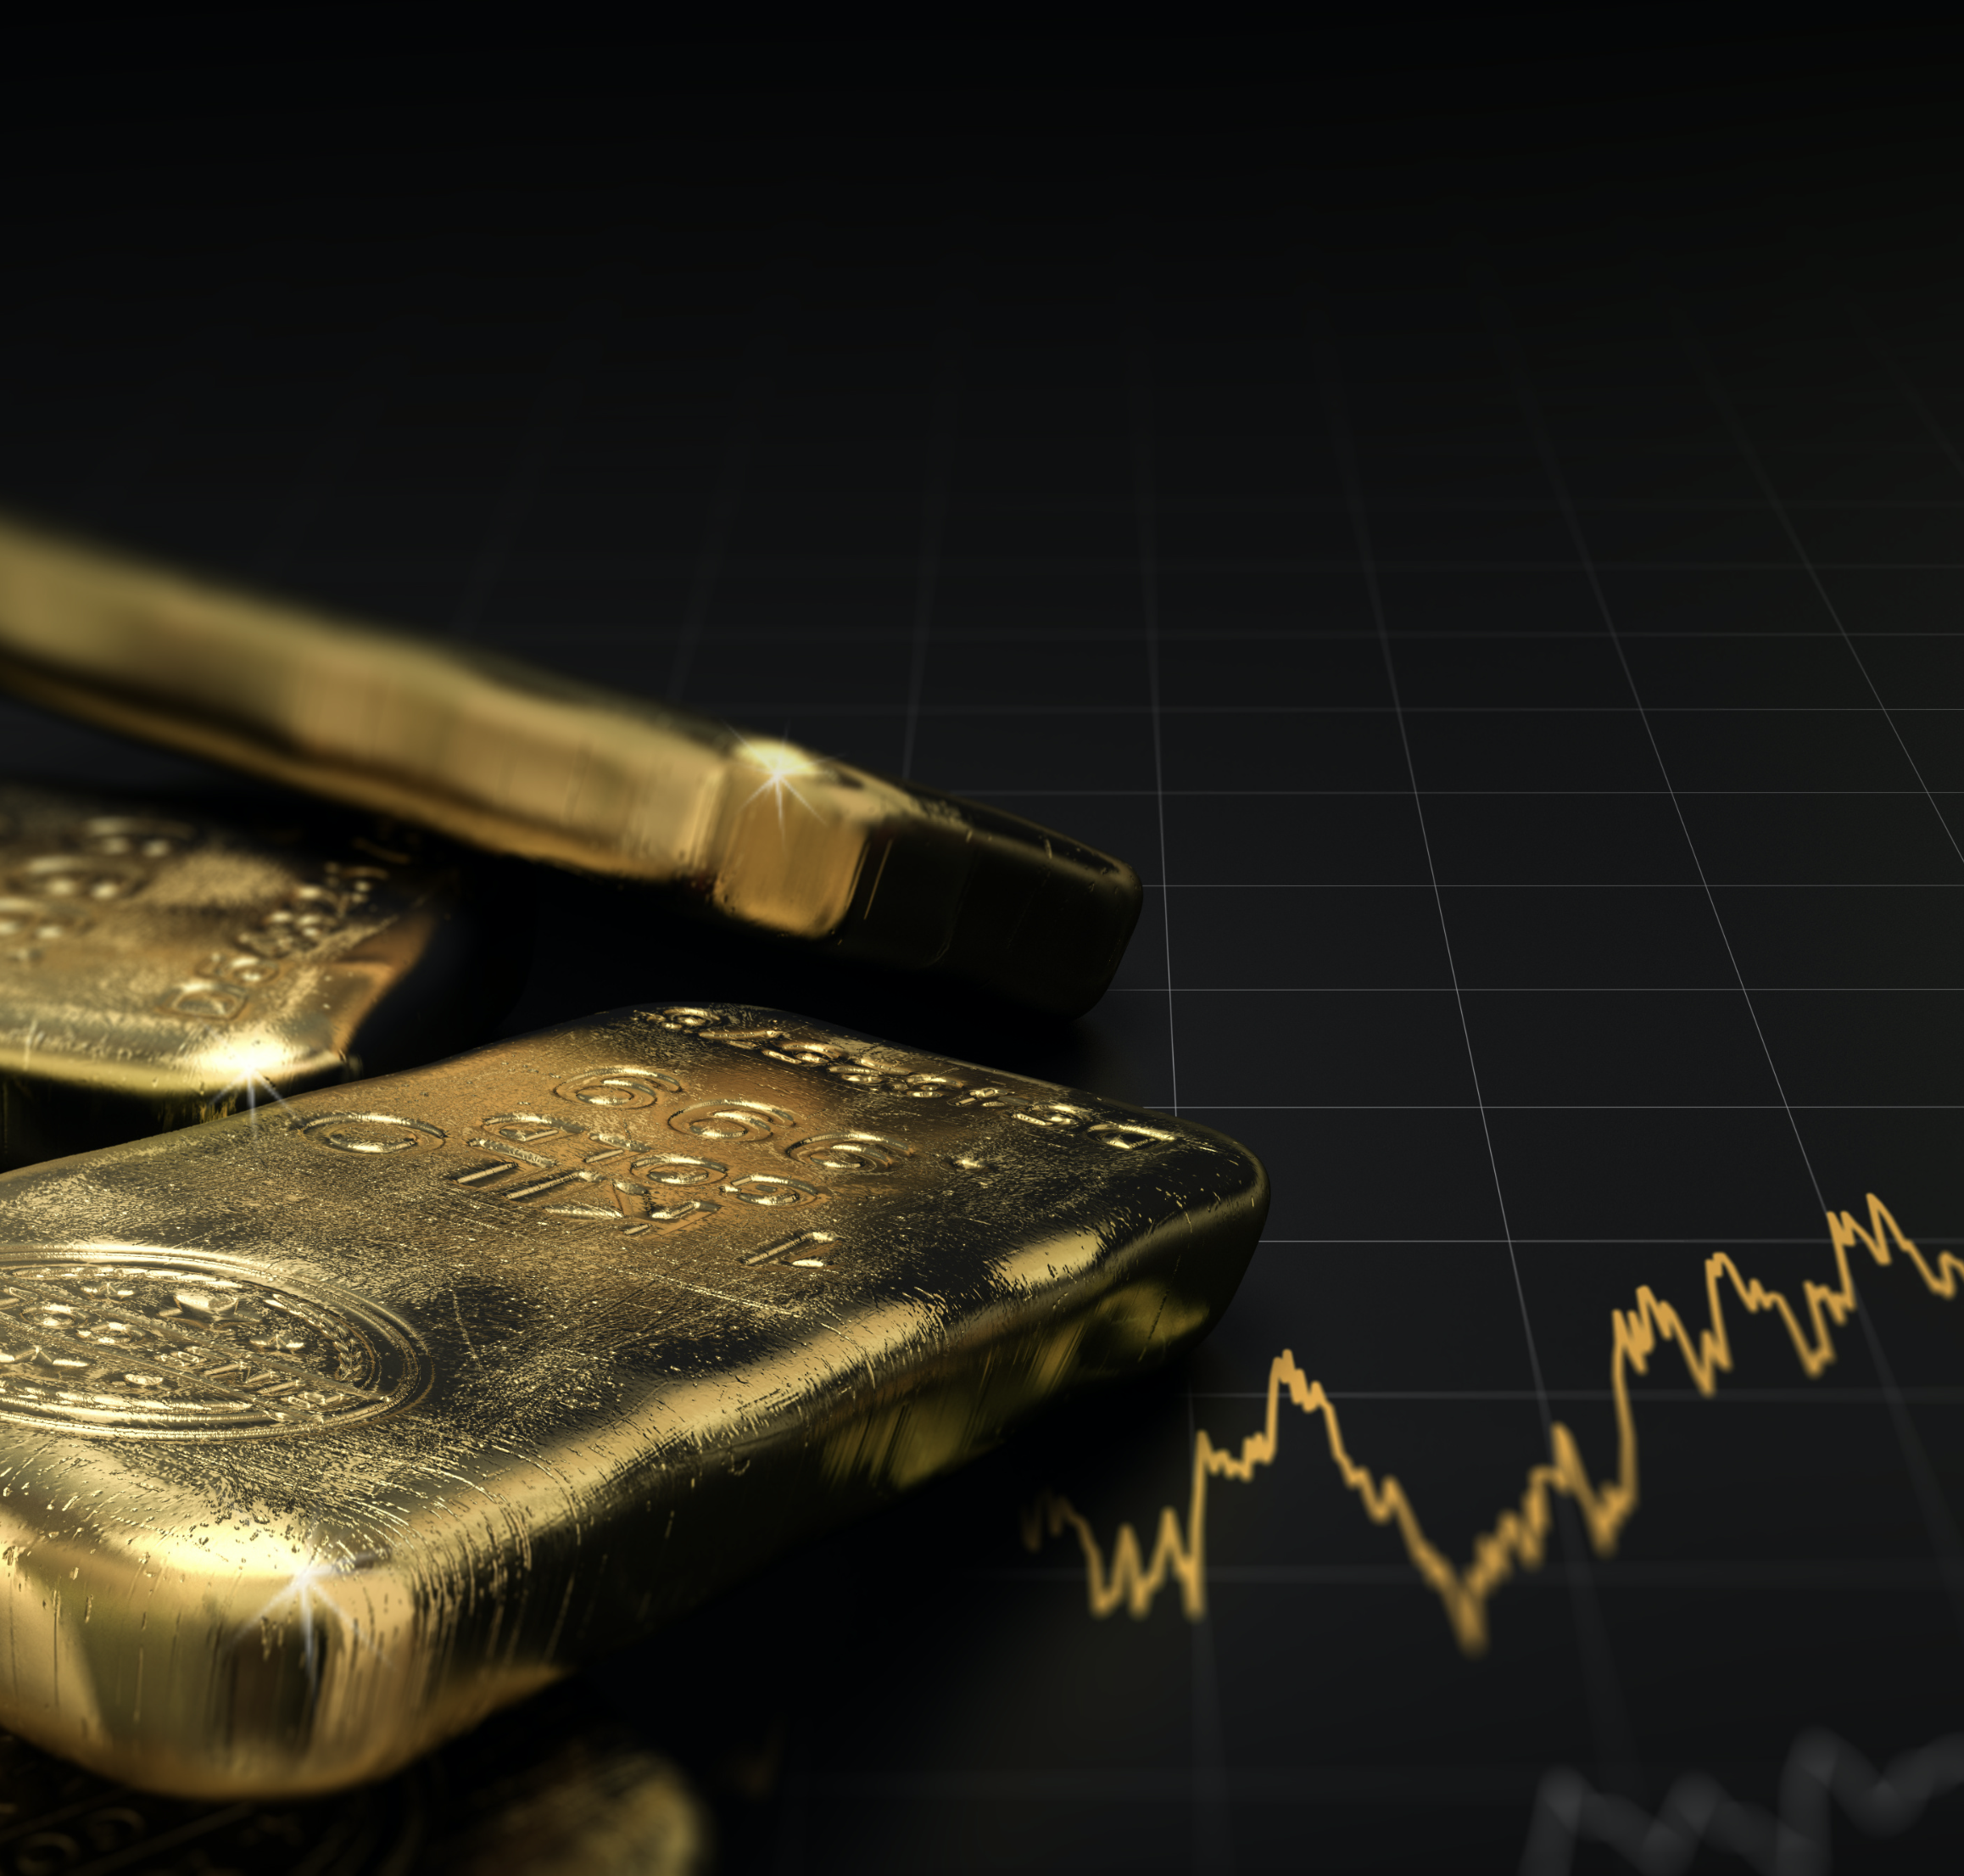 Gold bars - Invest your pension in gold